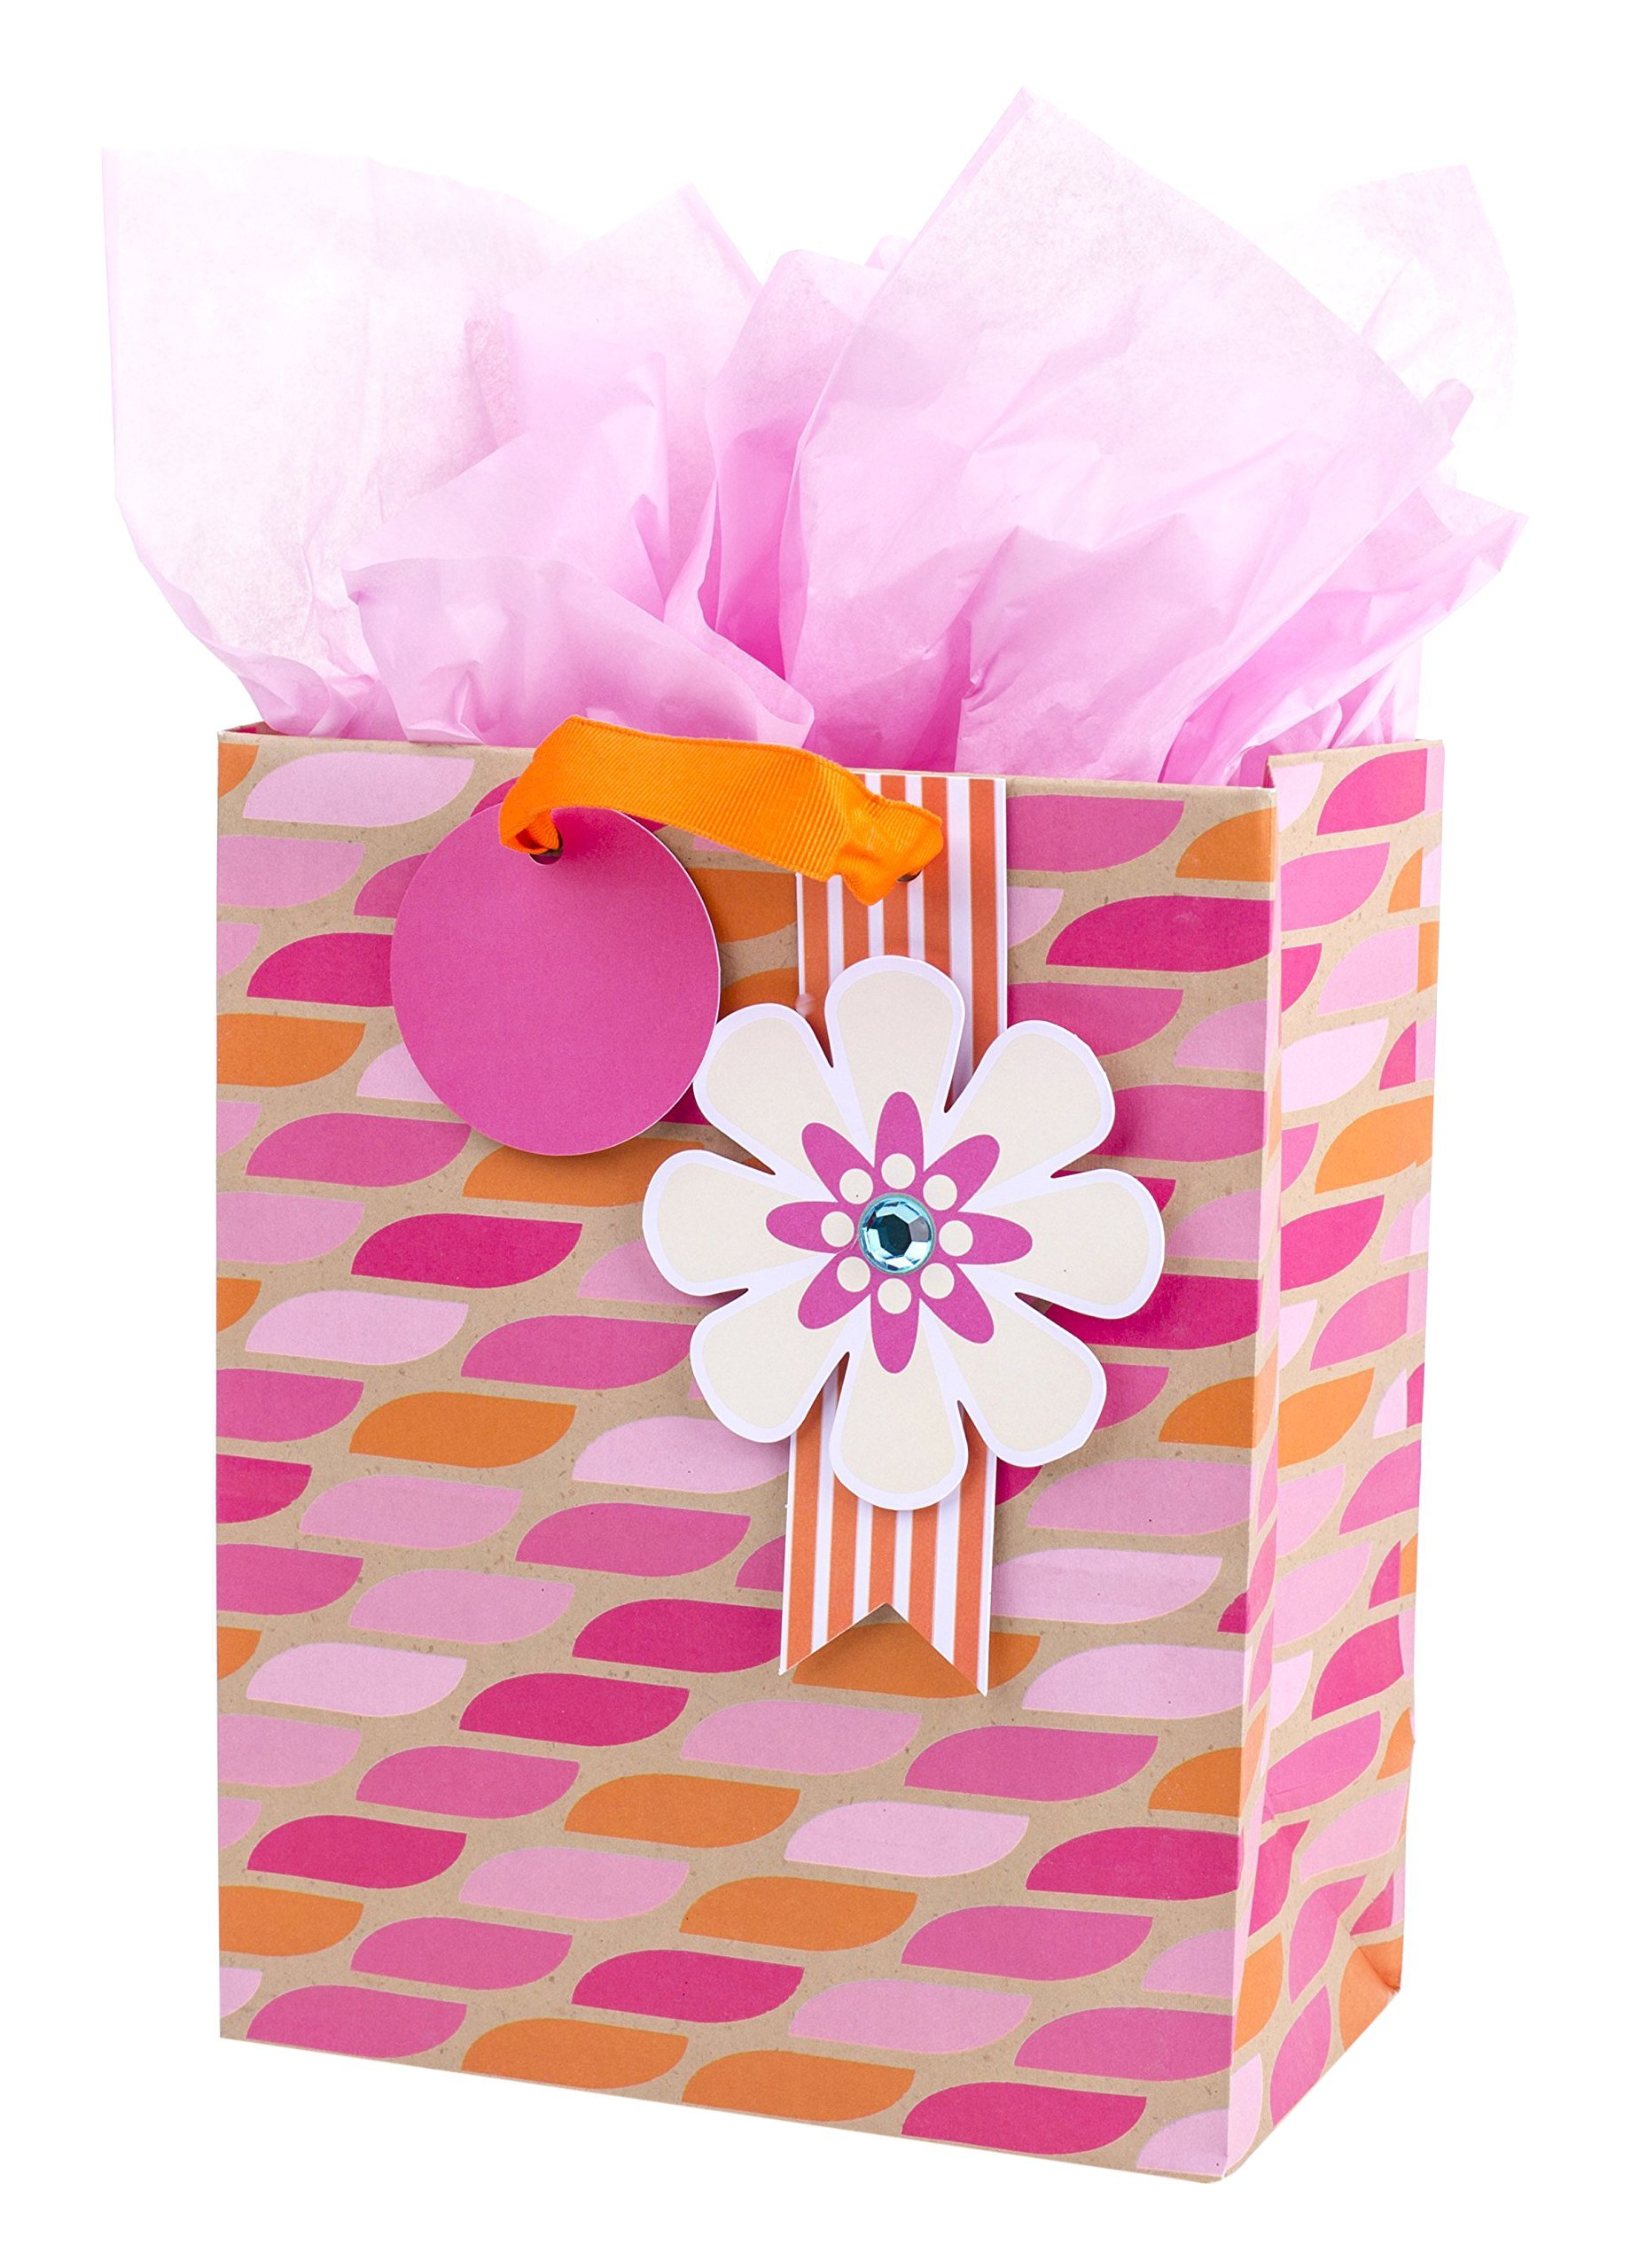 "Hallmark 9"" Medium Gift Bag with Tissue Paper (Pink & Orange with Flower) for Birthdays, Mother's Day, Bridal Showers, Baby Showers or Any Occasion"